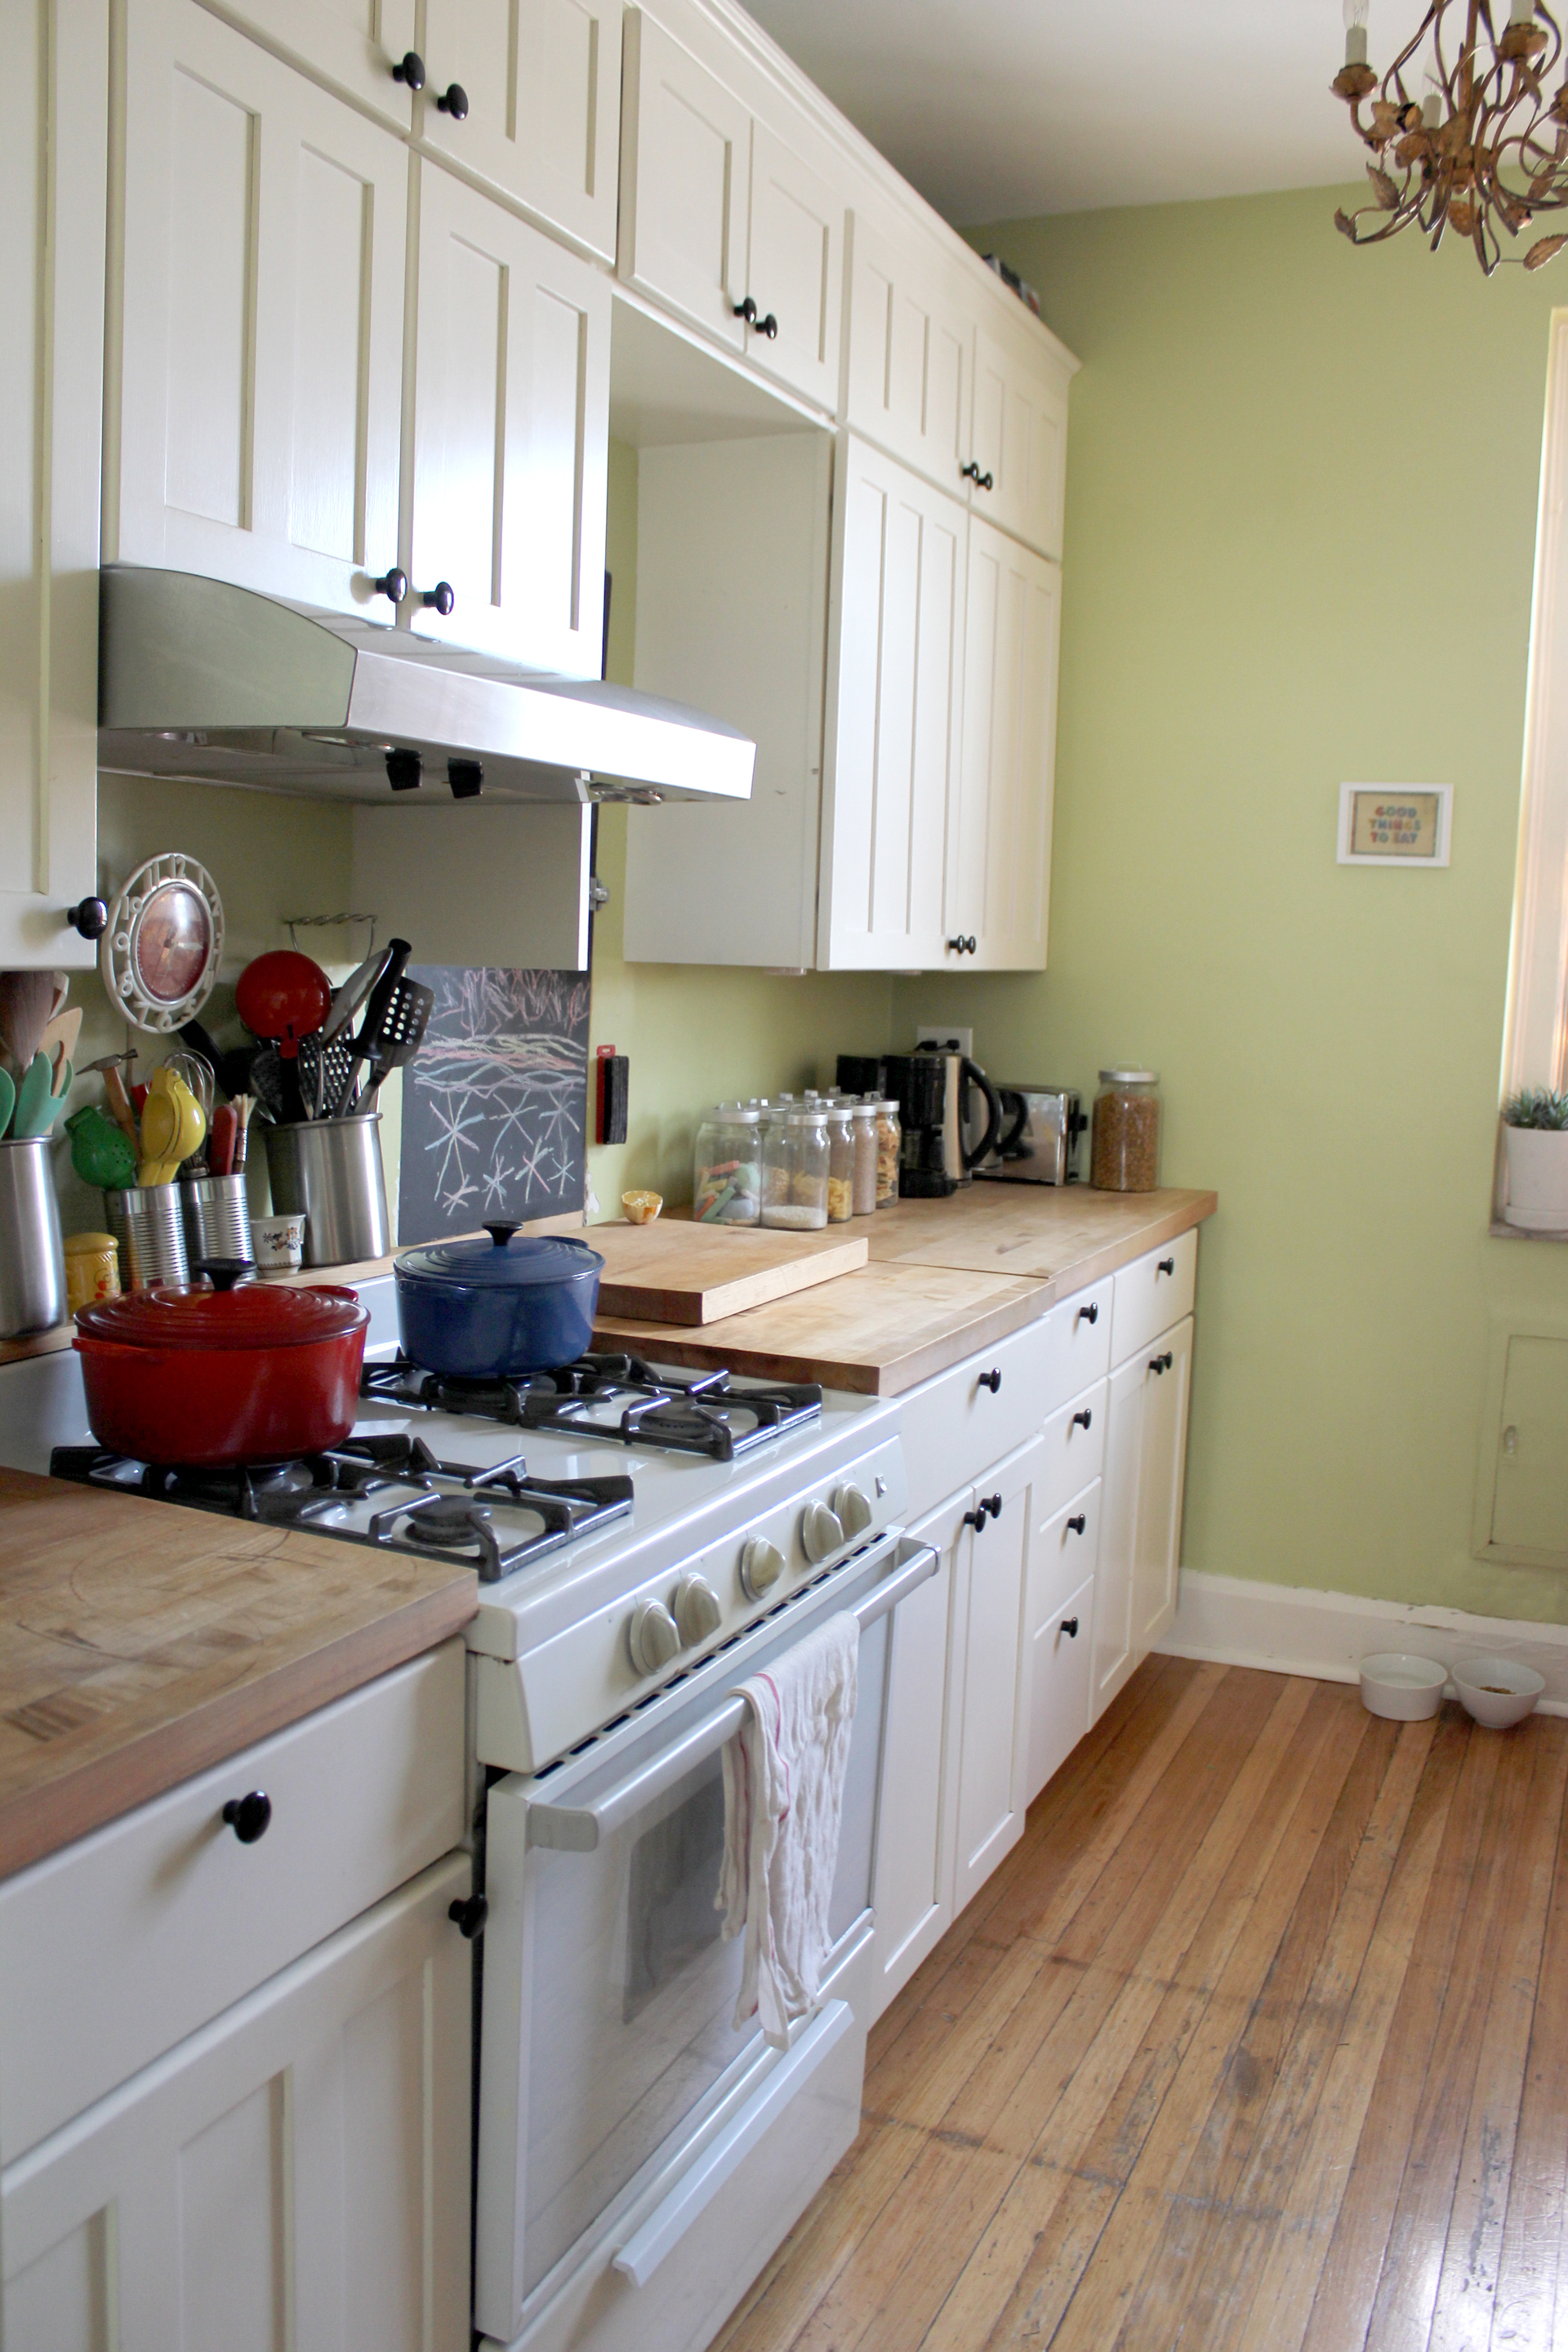 Our Jackson Heights Kitchen Was A Typical, Small, New York City Galley  Kitchen. Shane And I Designed And (gut) Renovated It Ourselves In 2007.